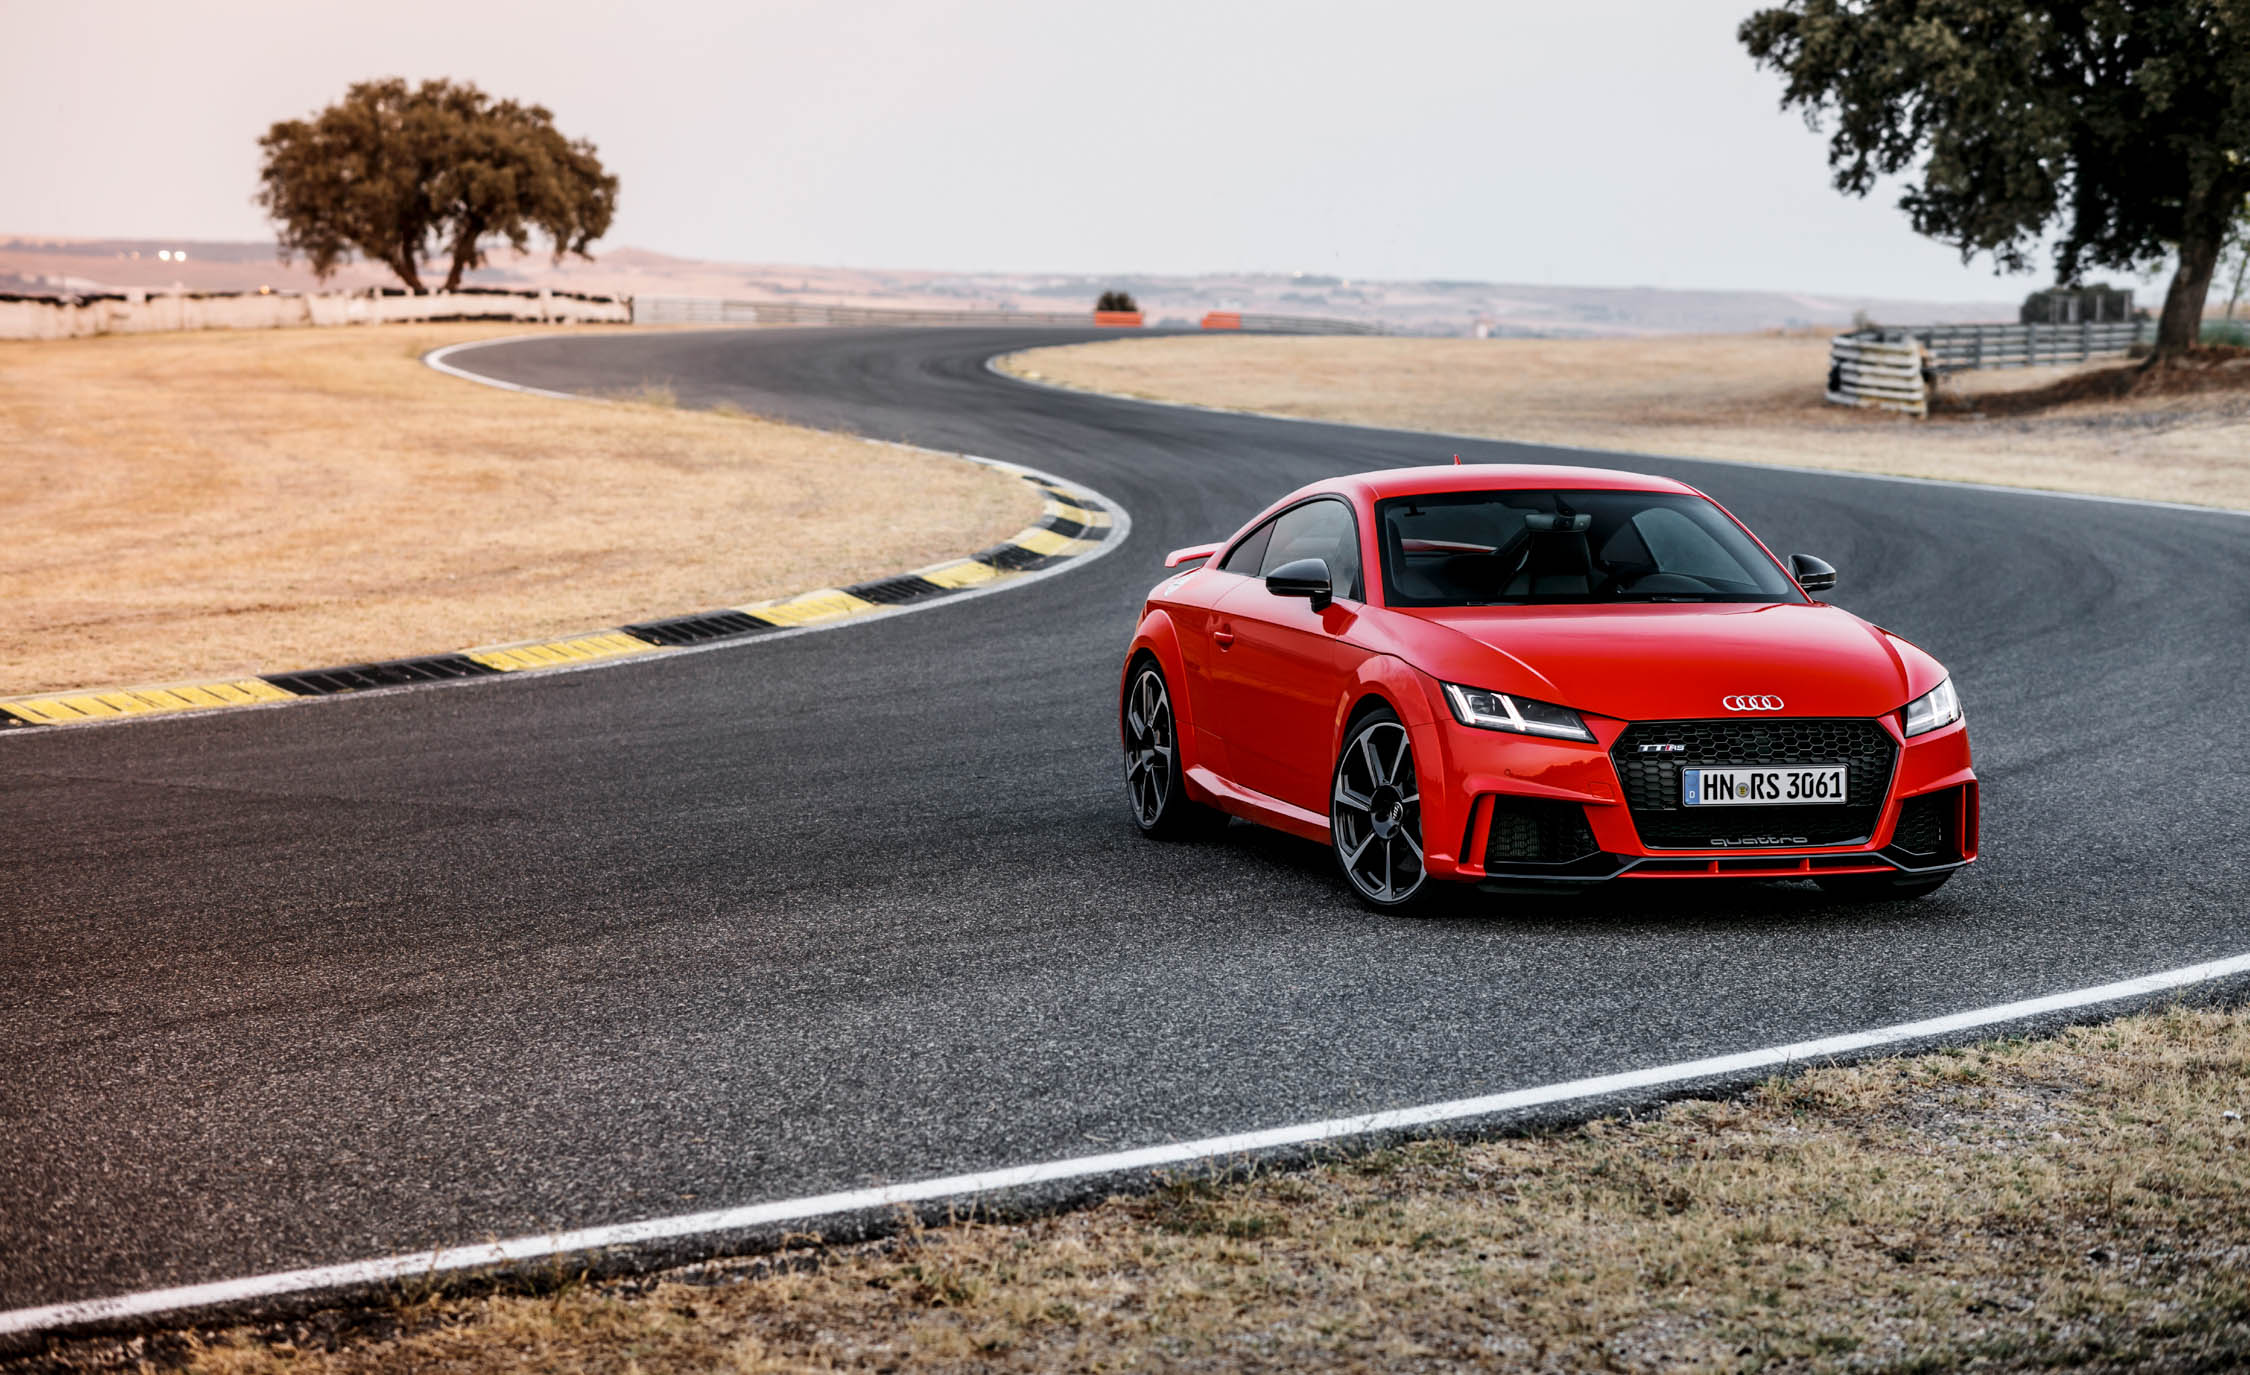 2017 Audi TT RS Coupe (View 9 of 34)